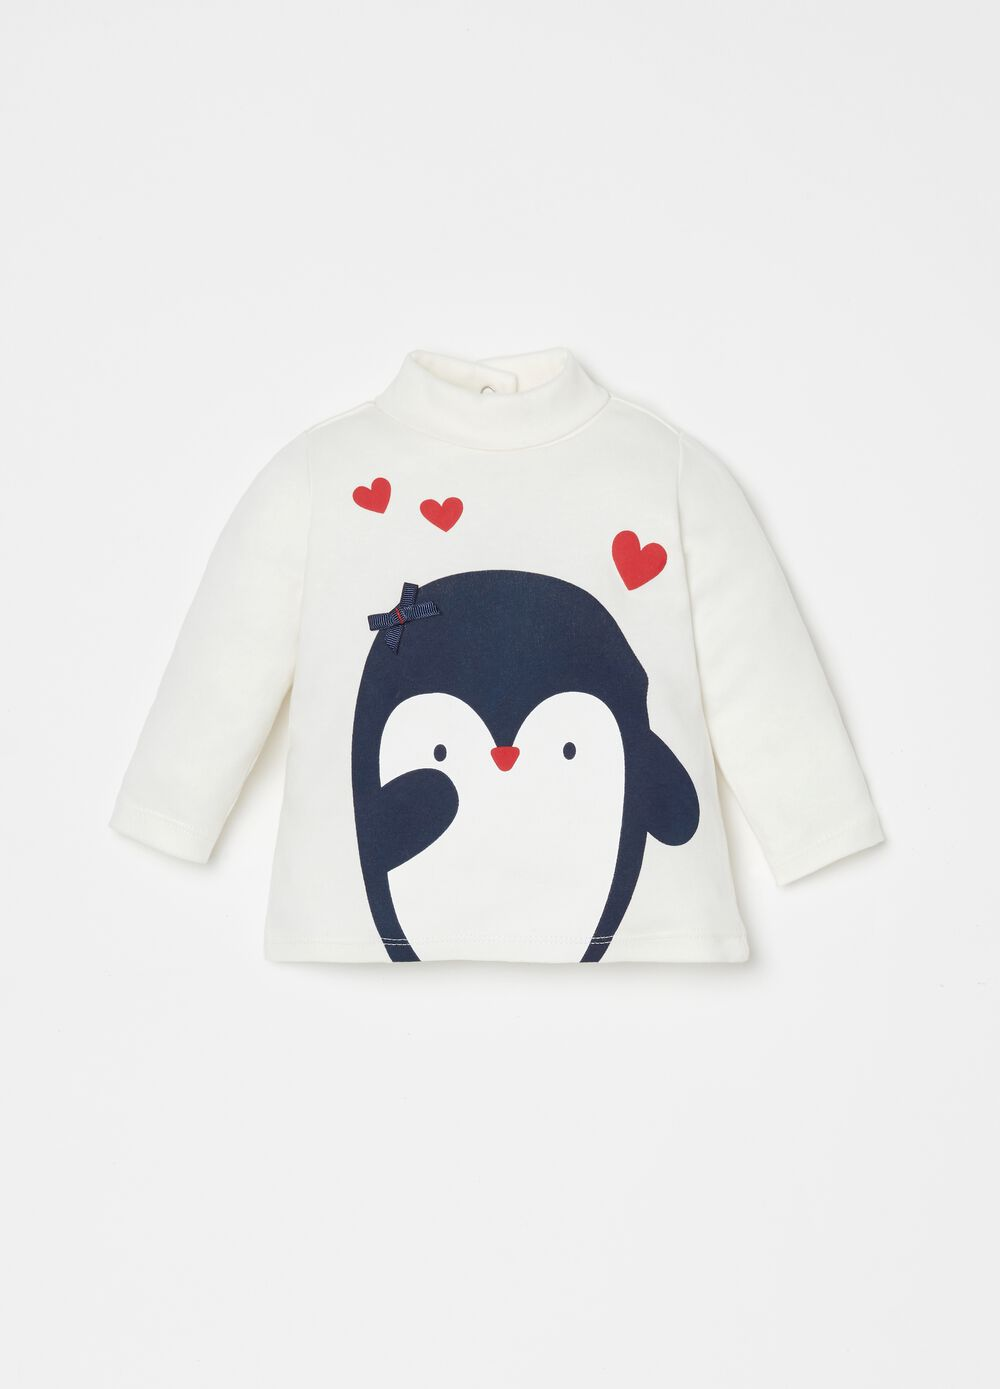 100% organic cotton T-shirt with penguin